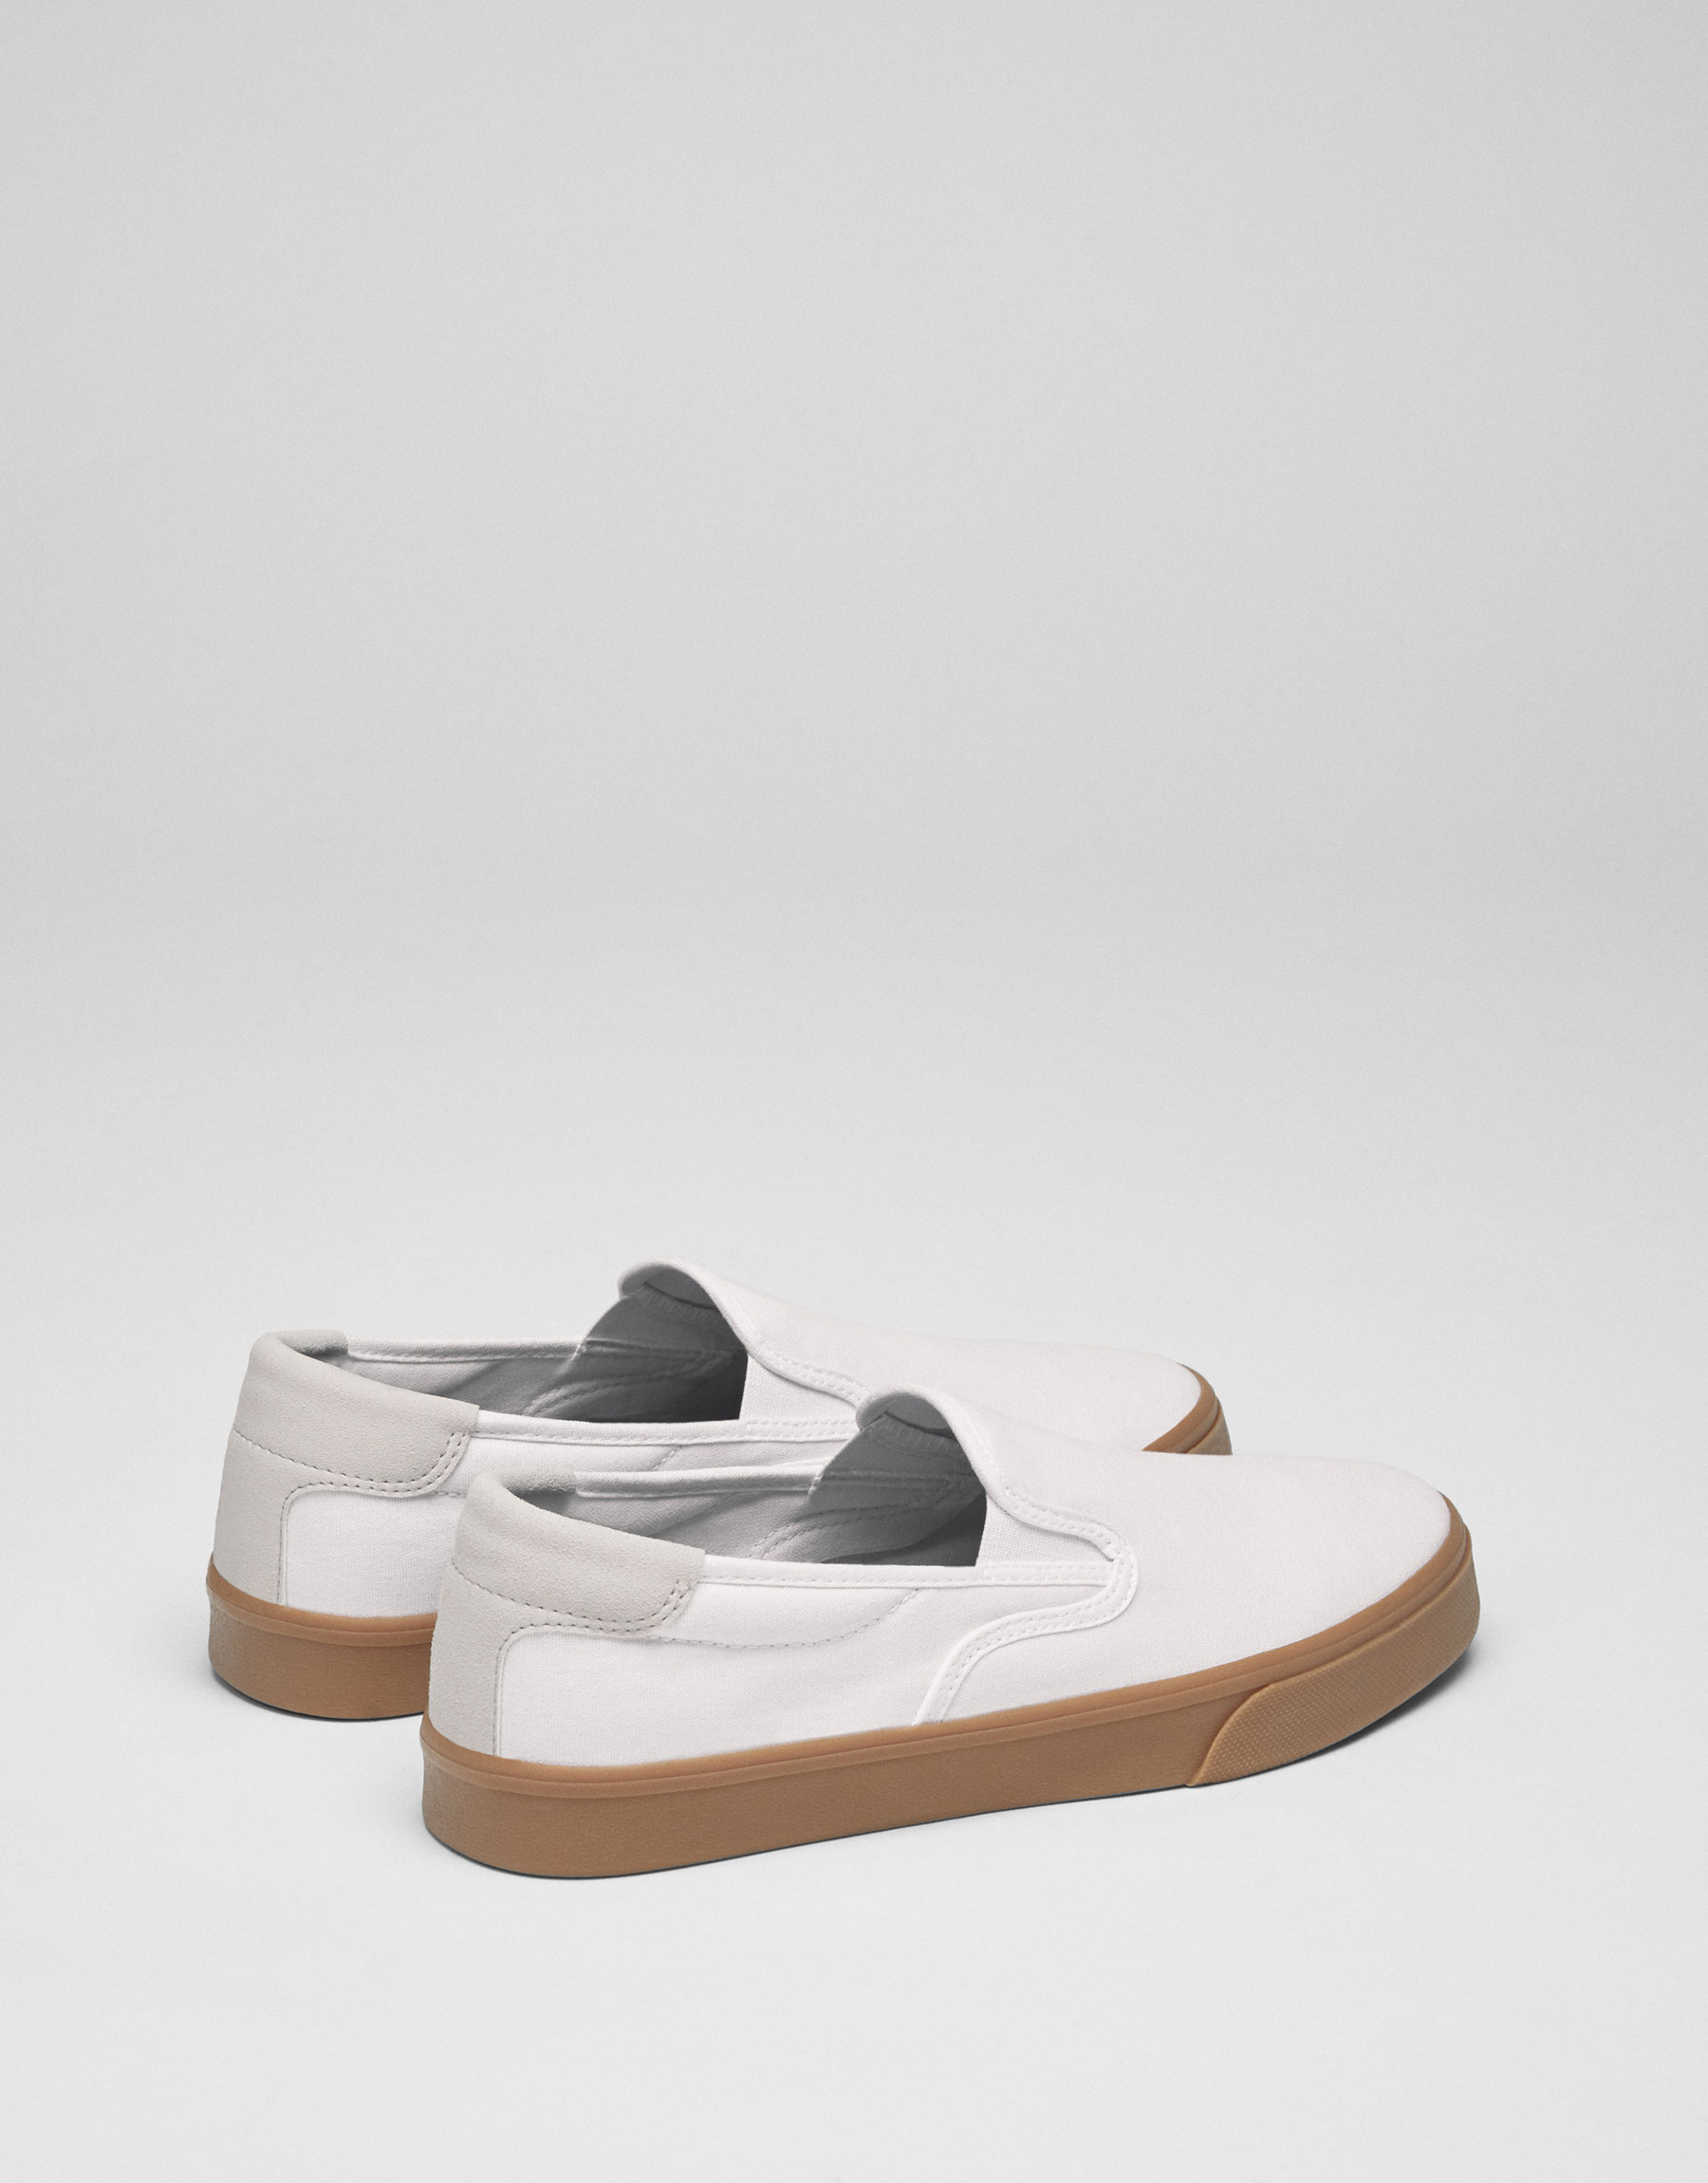 White sneakers with a caramel sole.